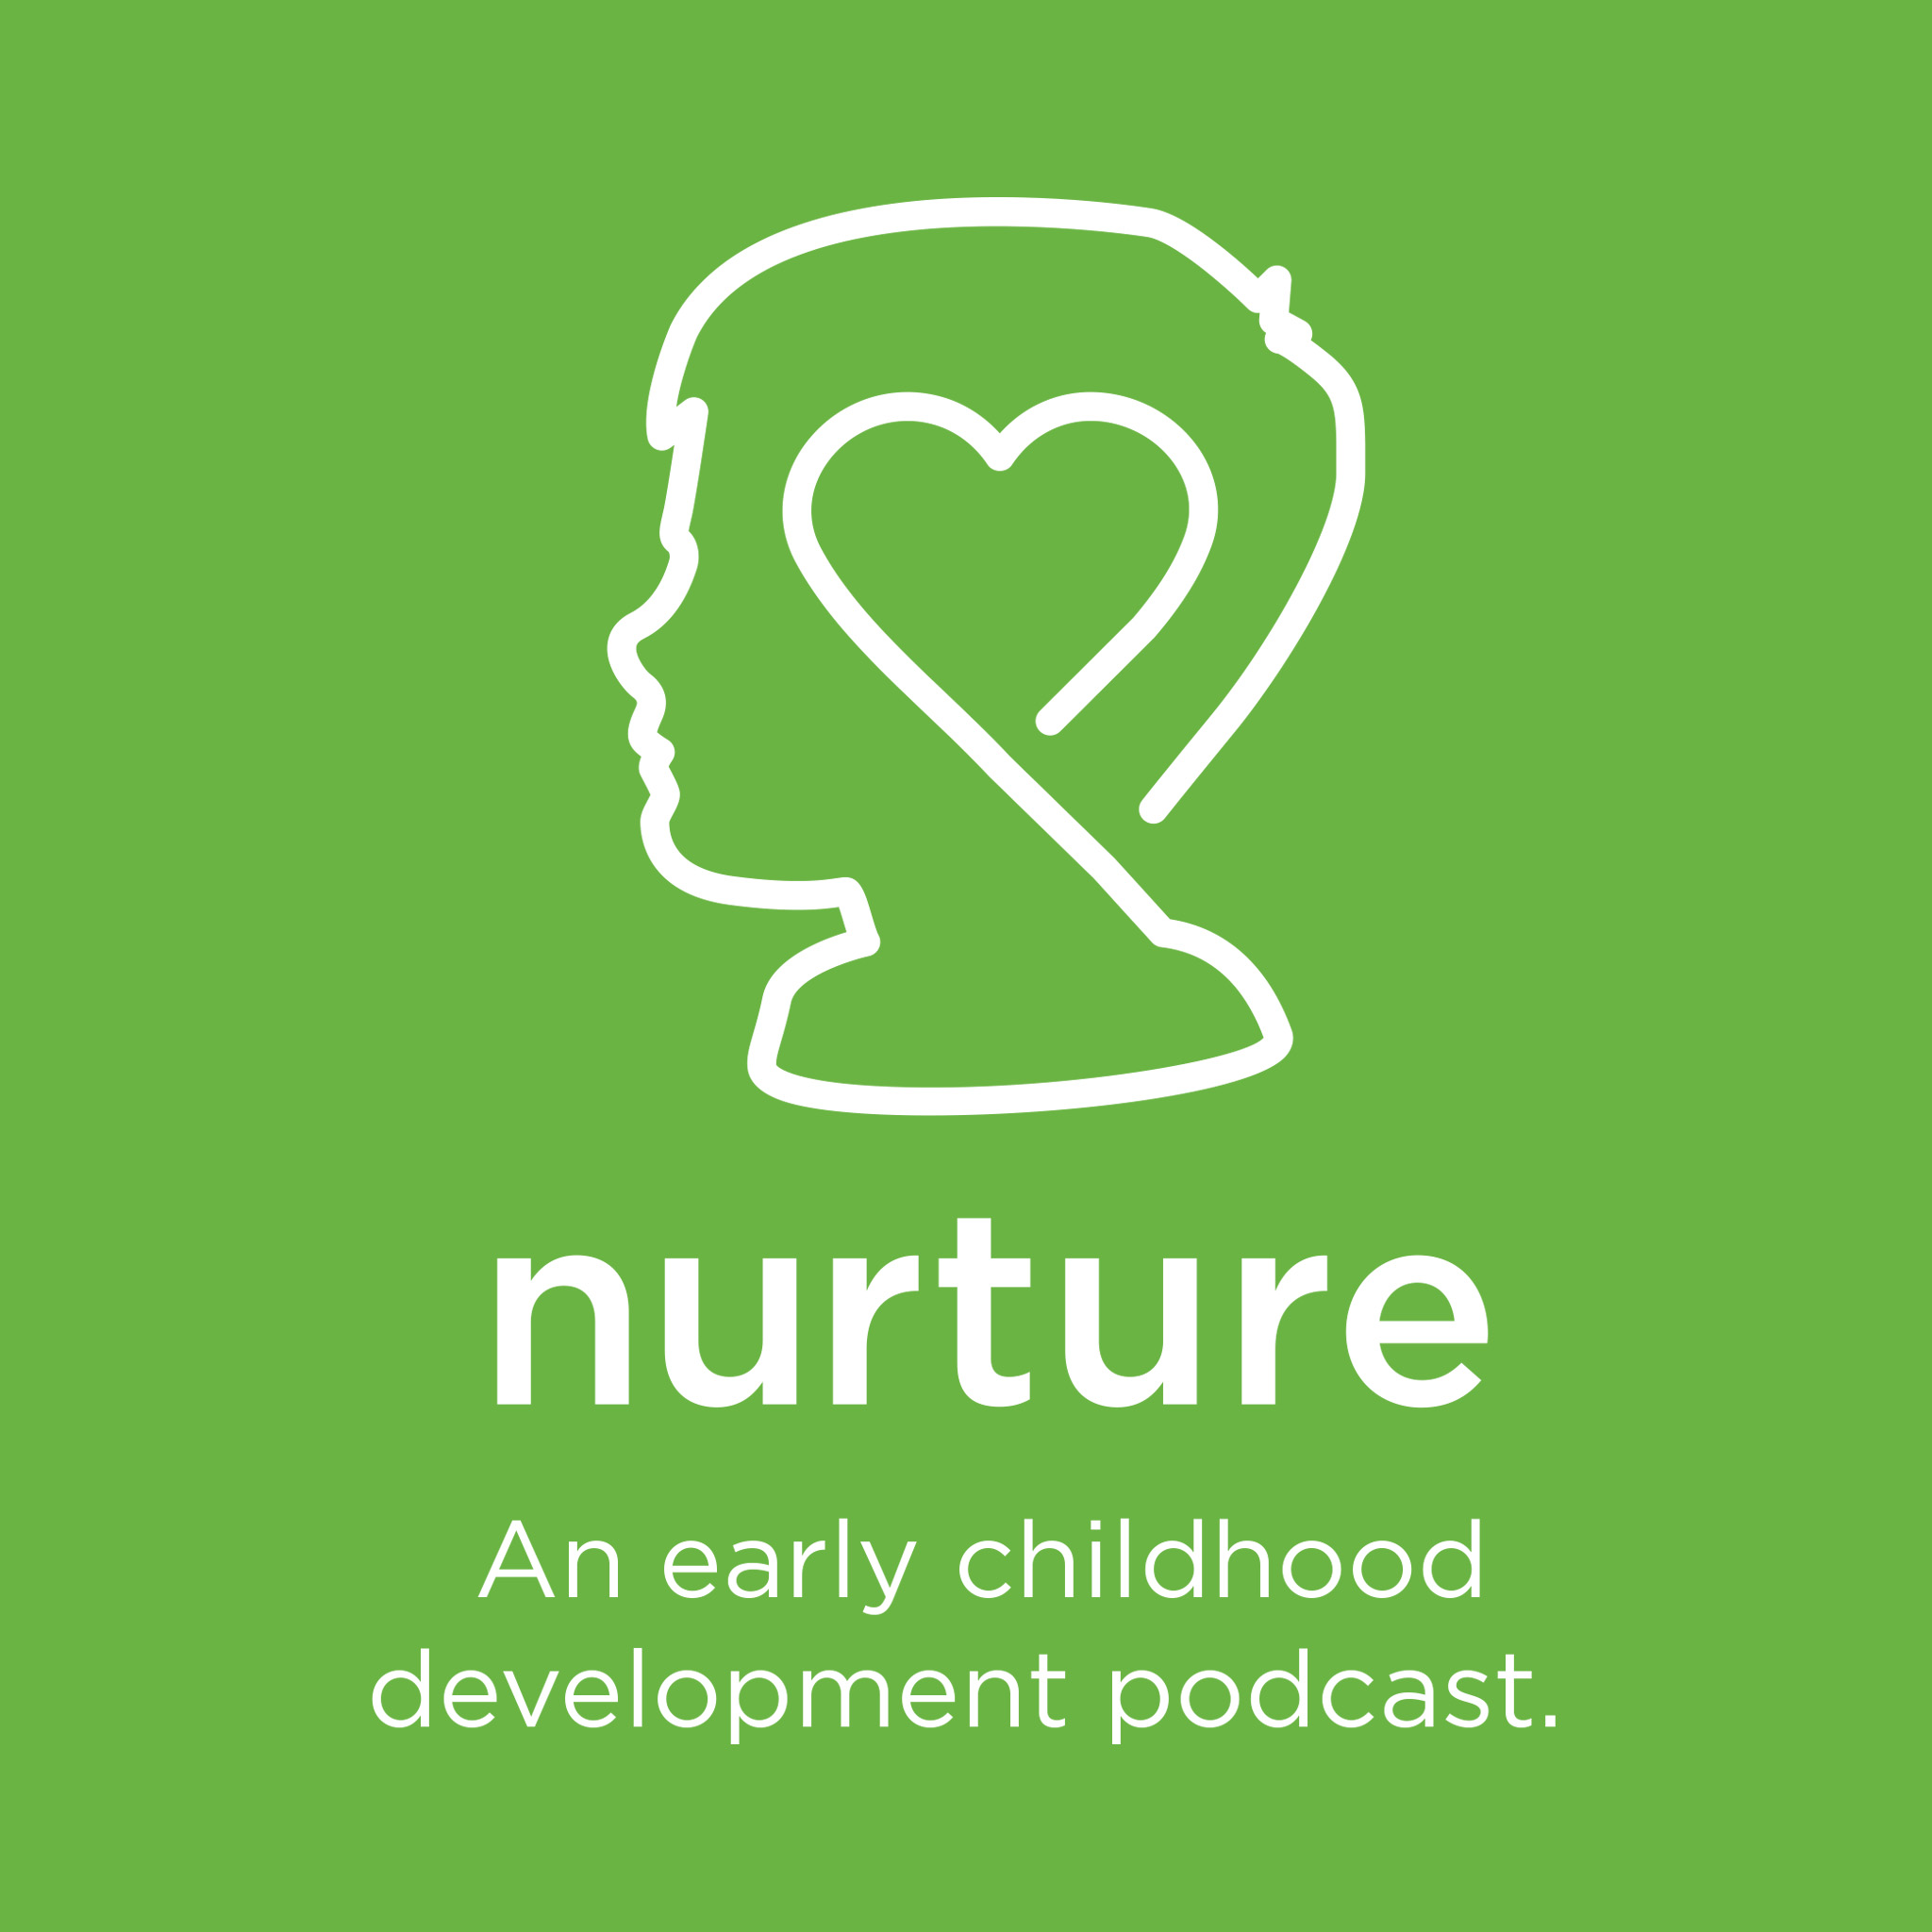 Nurture an early childhood development podcast listen via stitcher for podcasts - Nurture images download ...